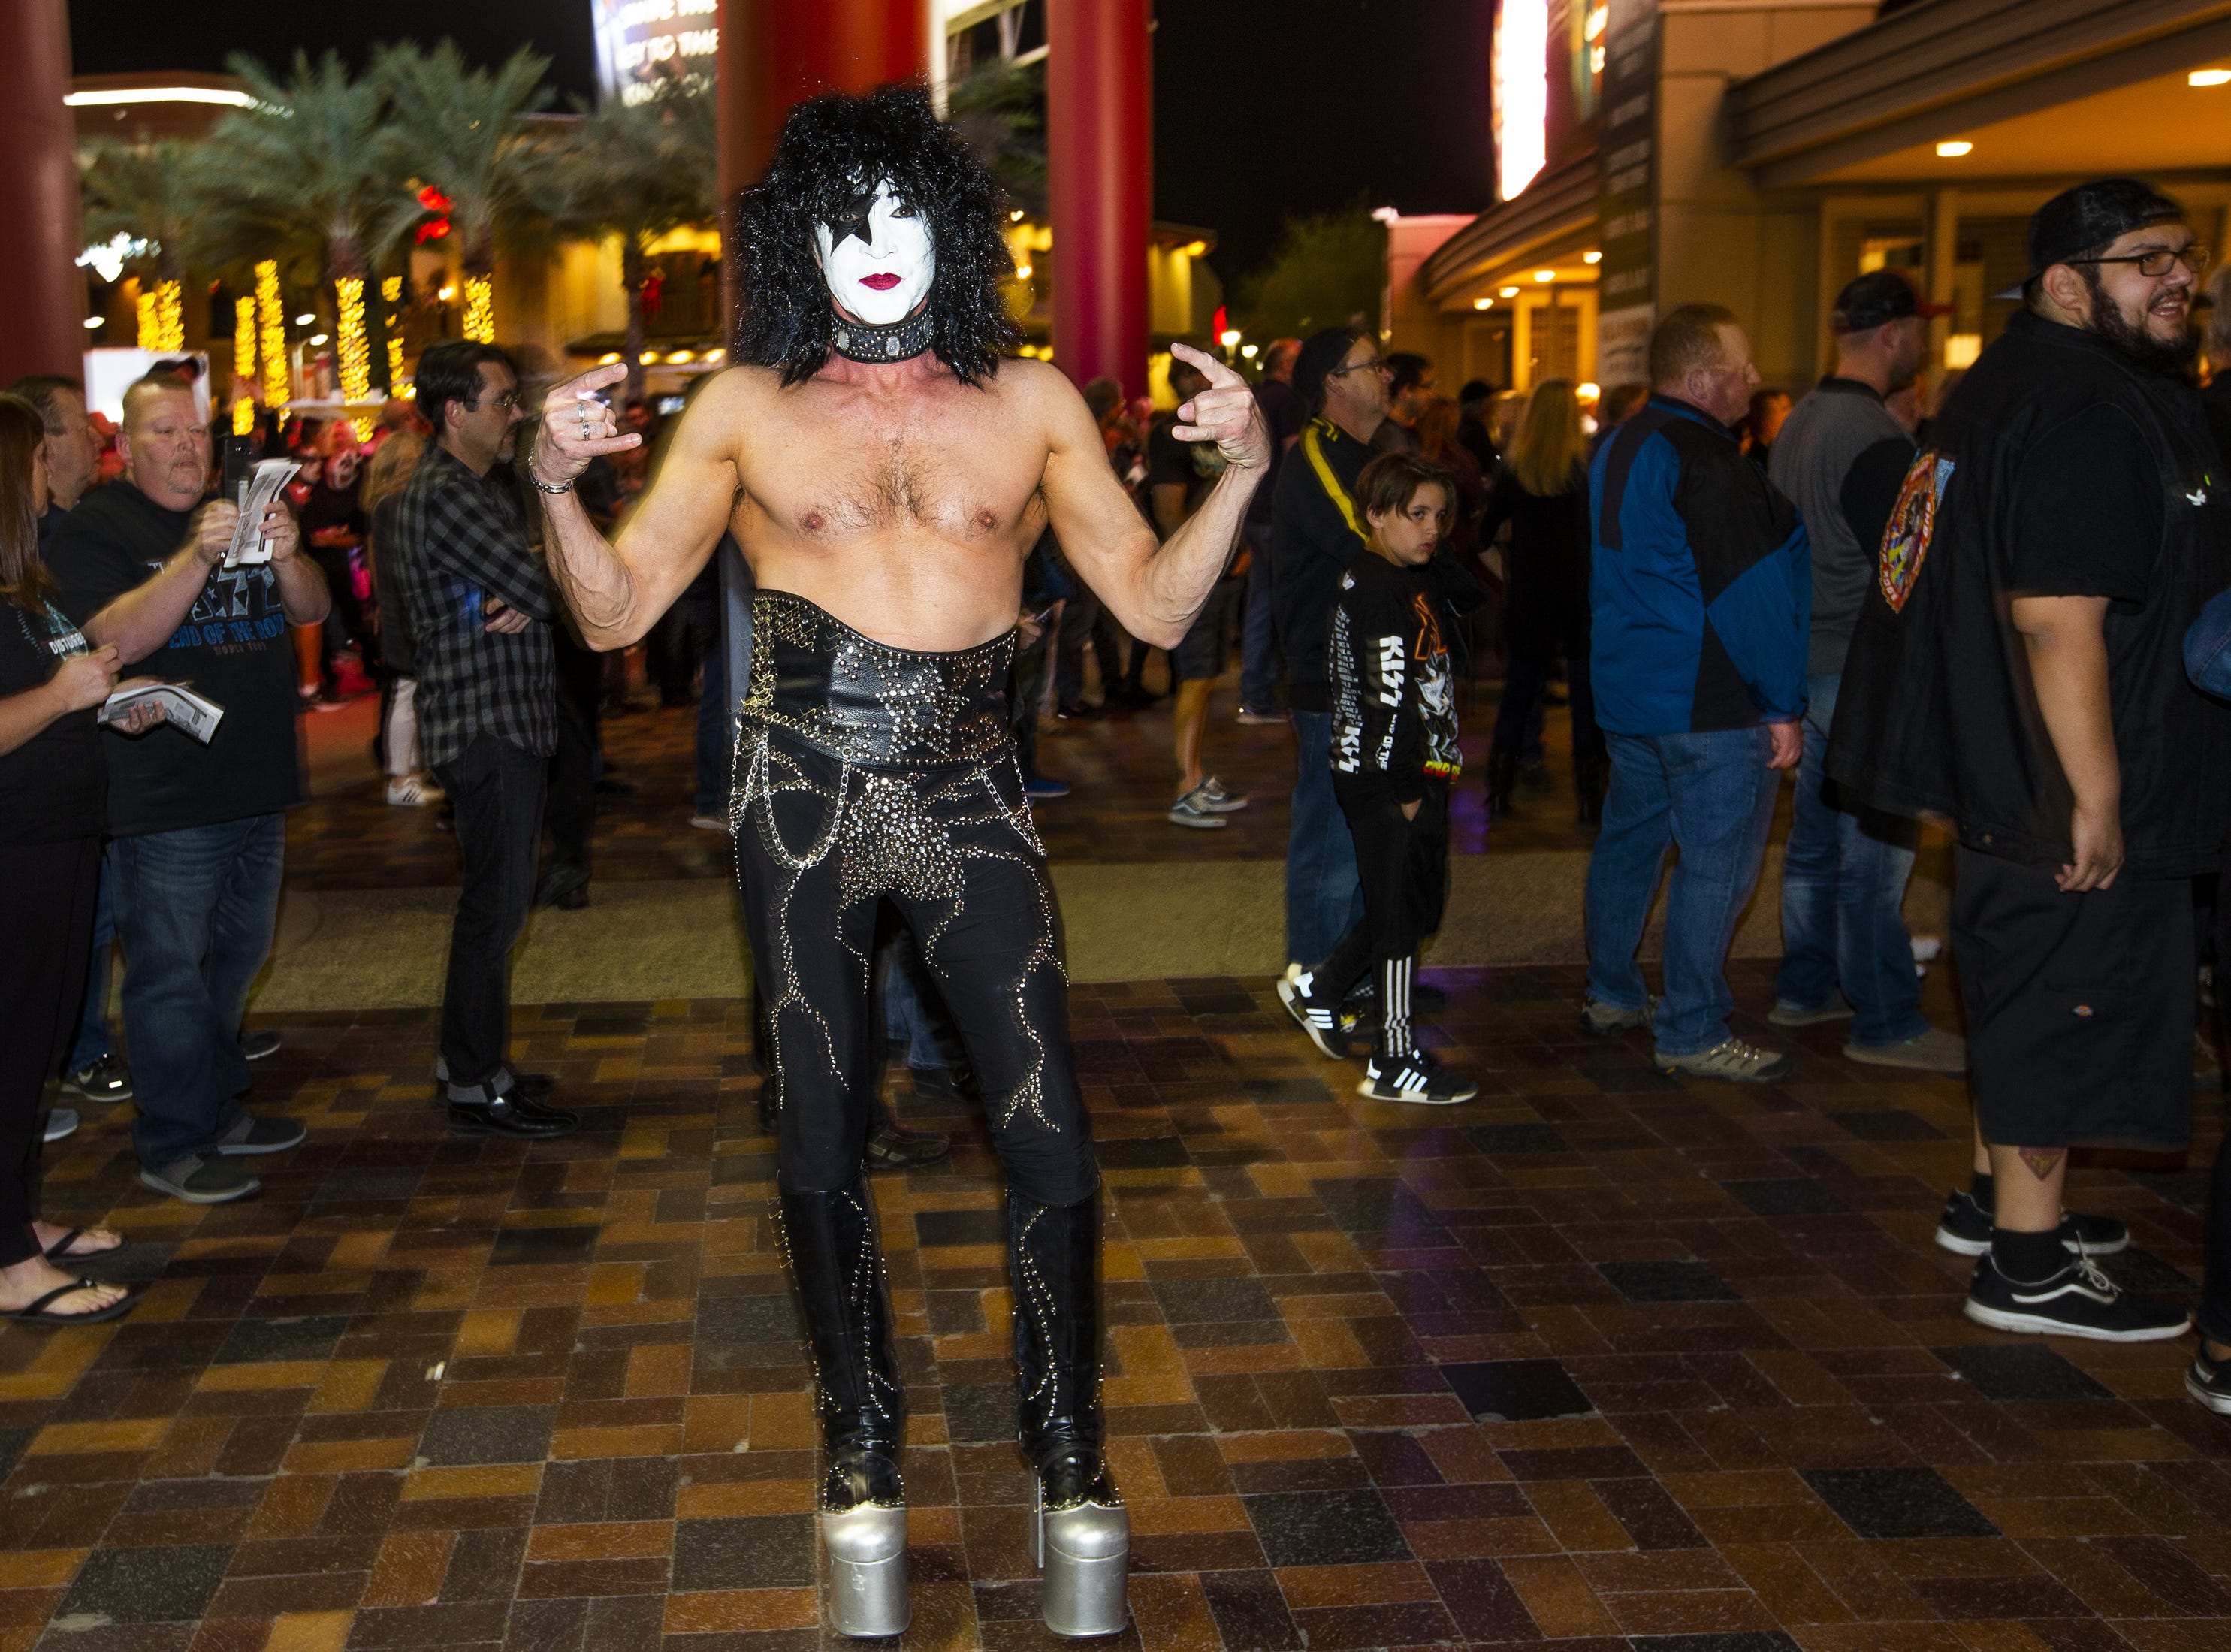 Kent Griffiths, 57, of Salt Lake City, Utah, shows off his best KISS makeup prior to the concert by the famed group at Gila River Arena in Glendale on Wednesday, Feb. 13, 2019.  The concert was part of the End of the Road World Tour, the band's farewell to the fans.